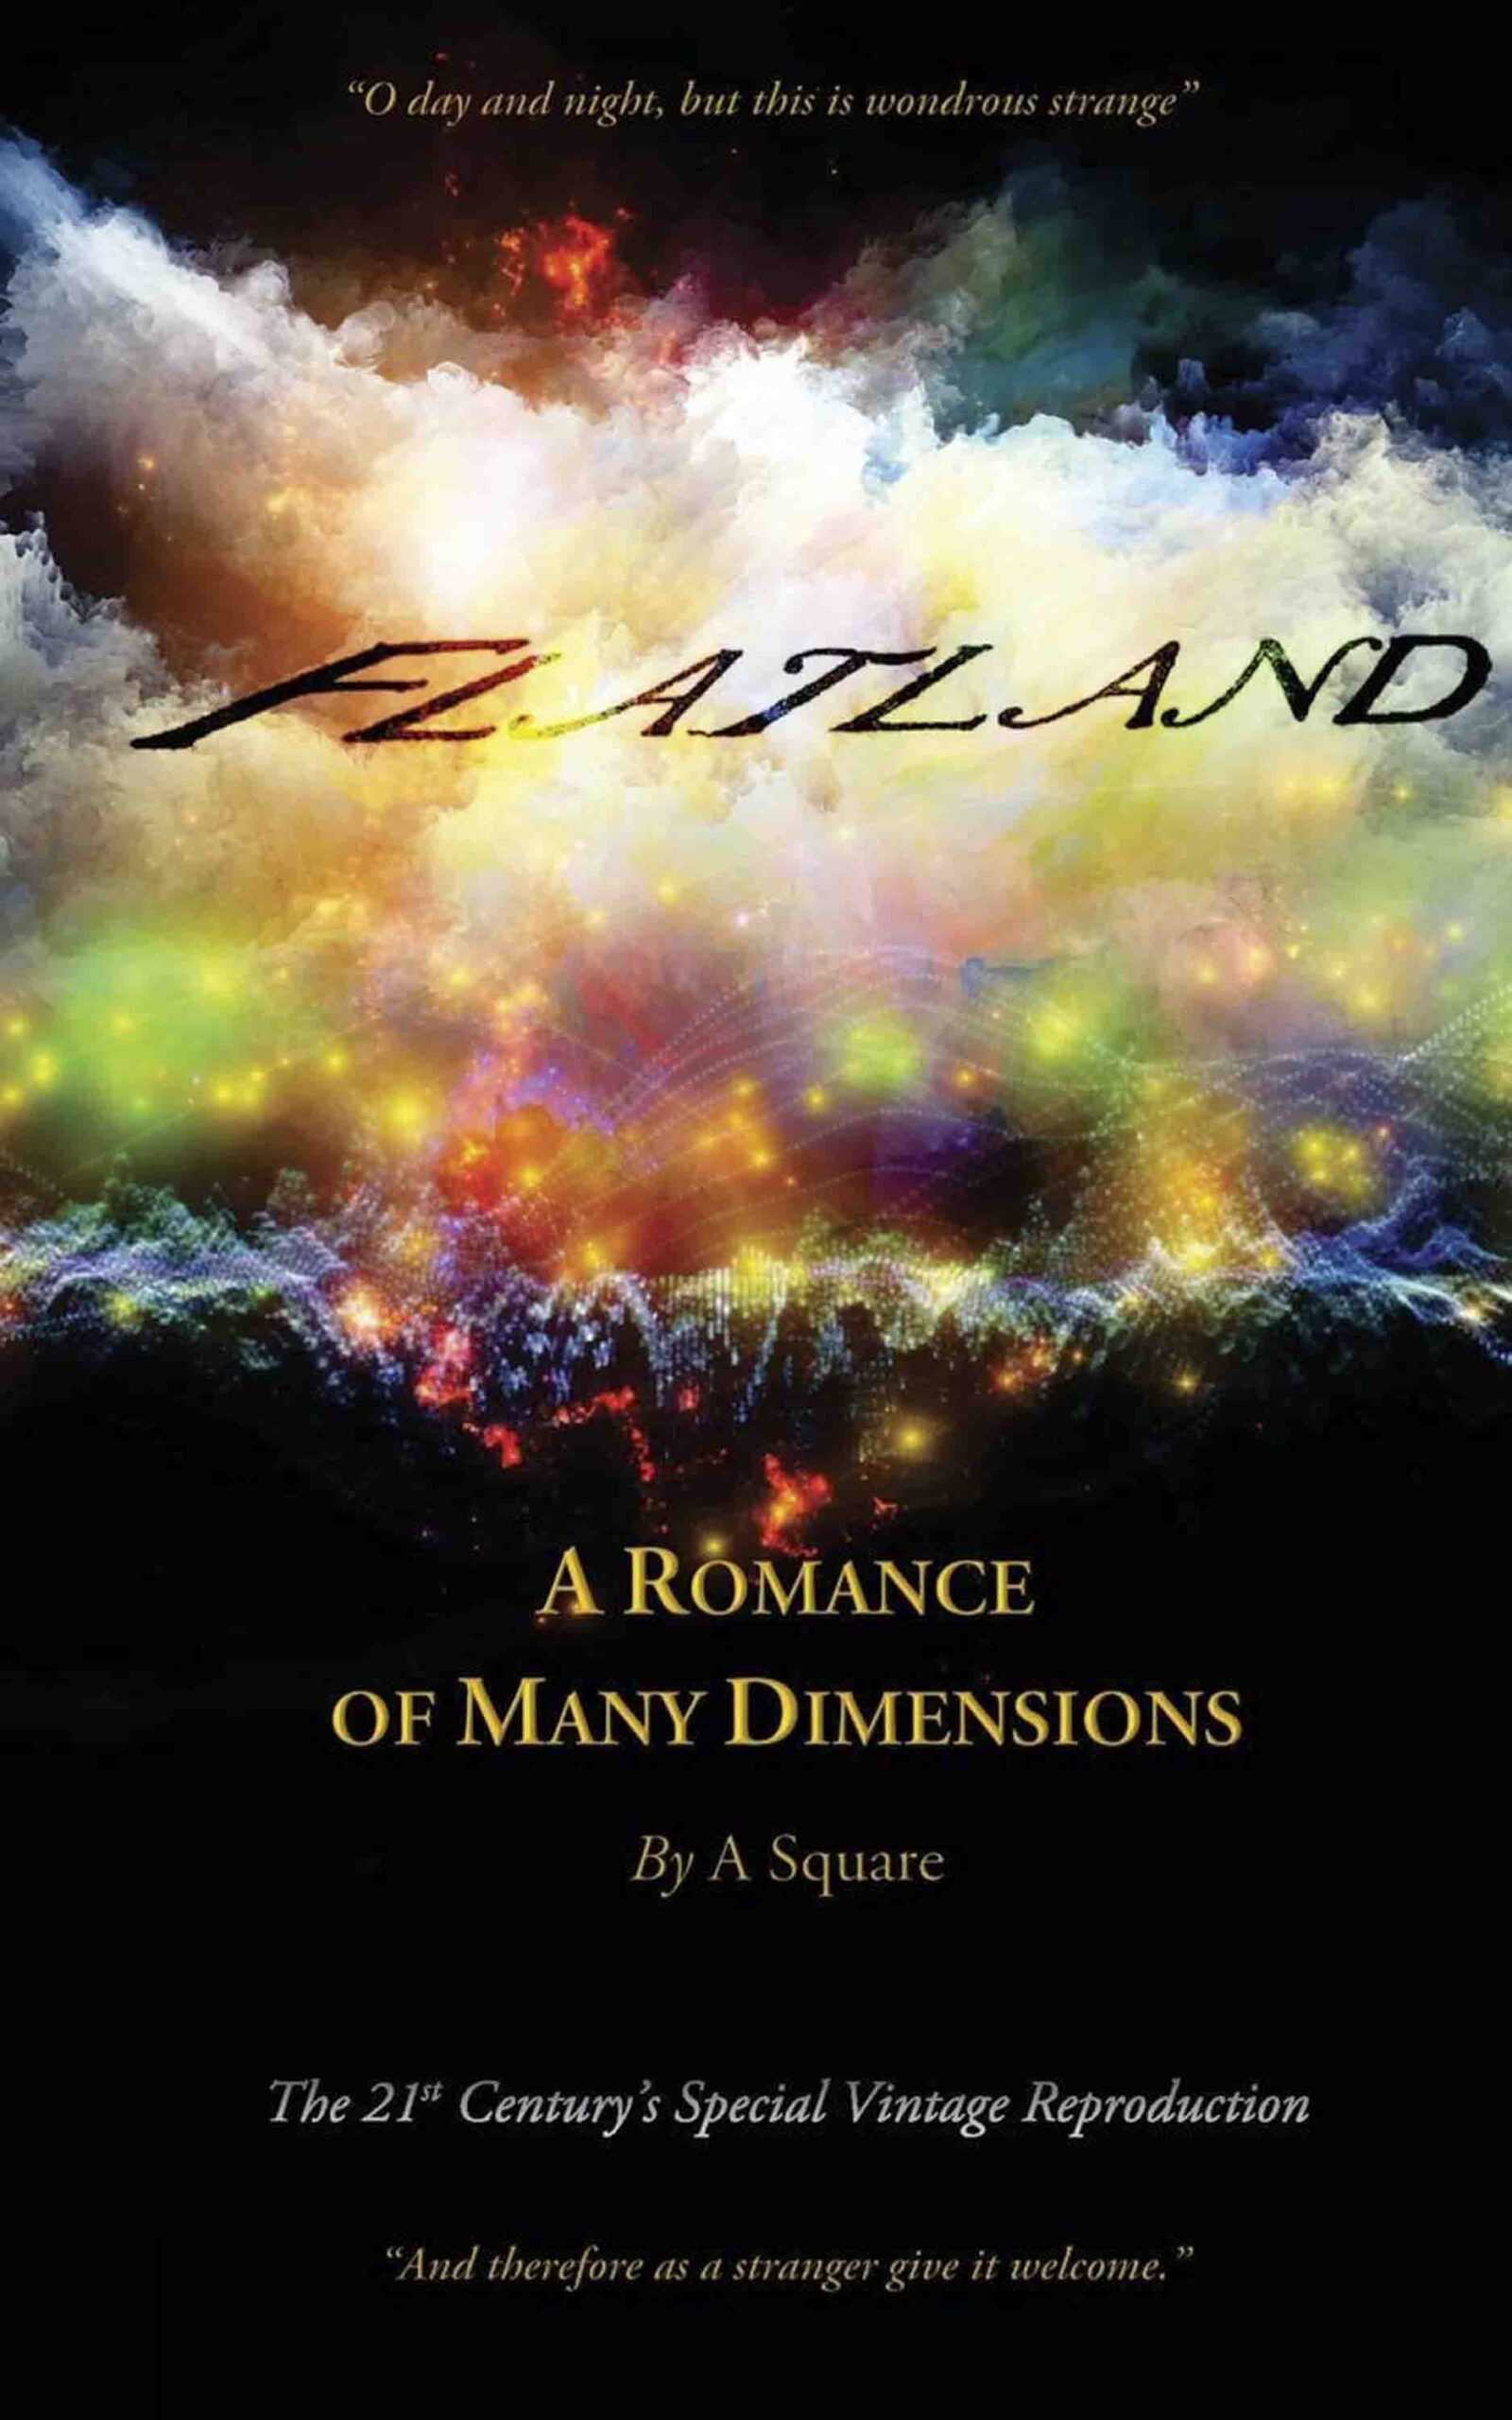 FLATLAND – A Romance of Many Dimensions (The Distinguished Chiron Edition)